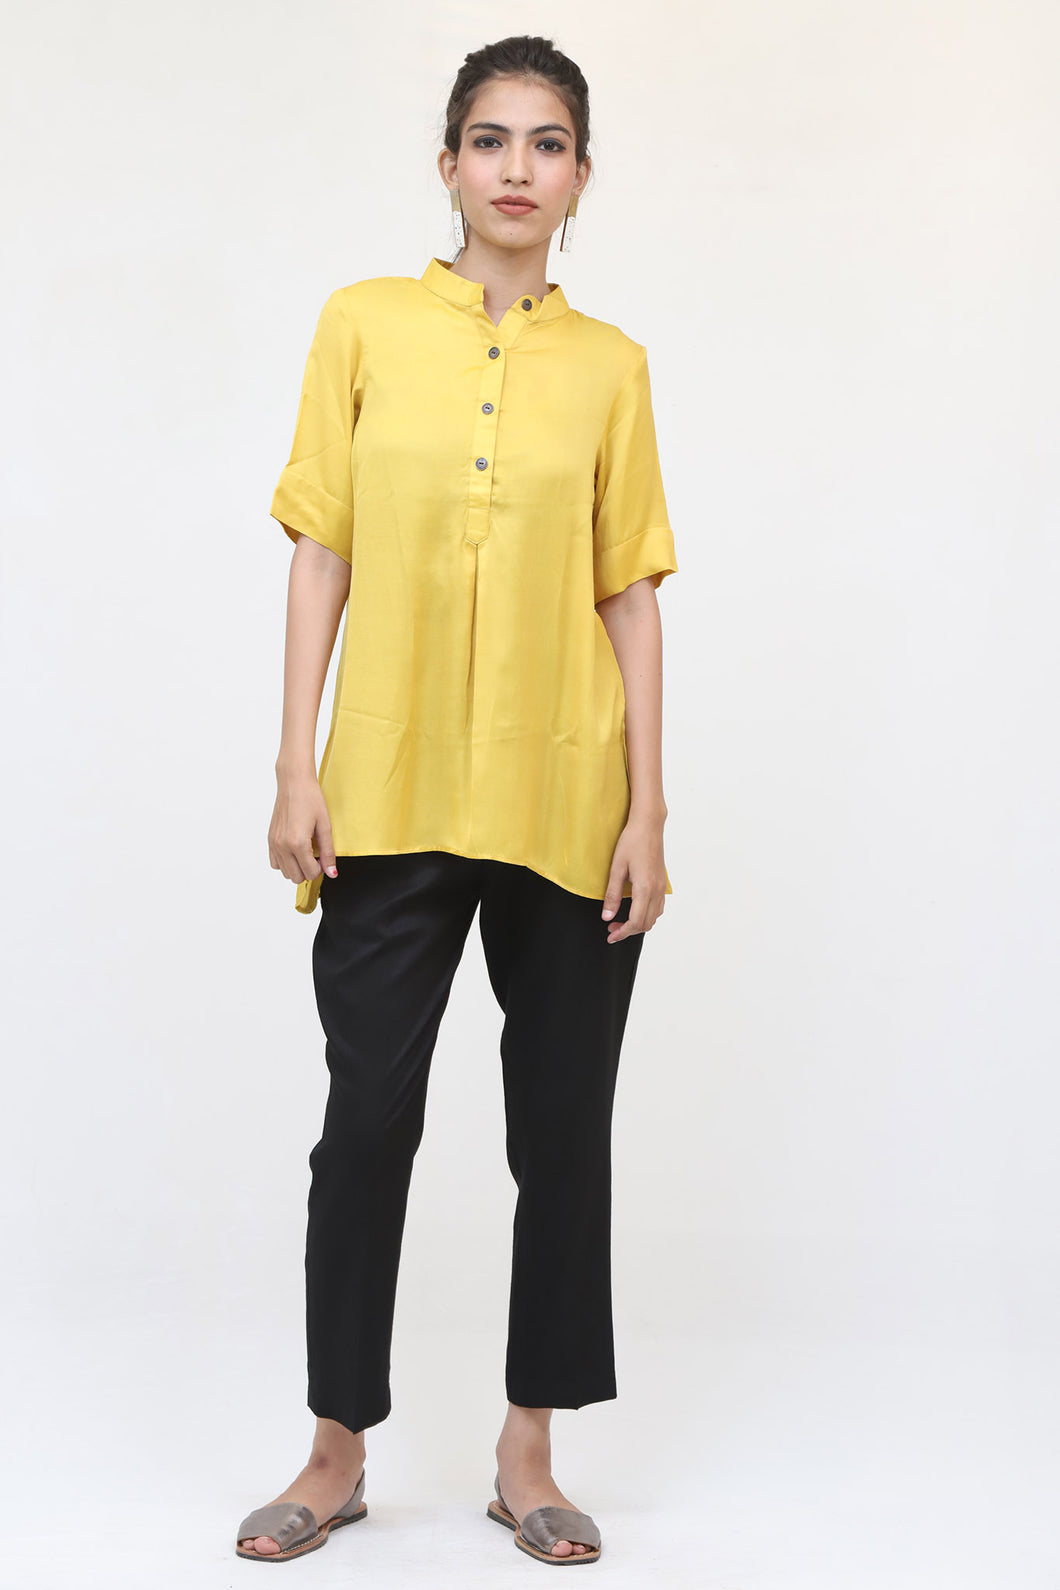 Yellow Short Sleeve Top